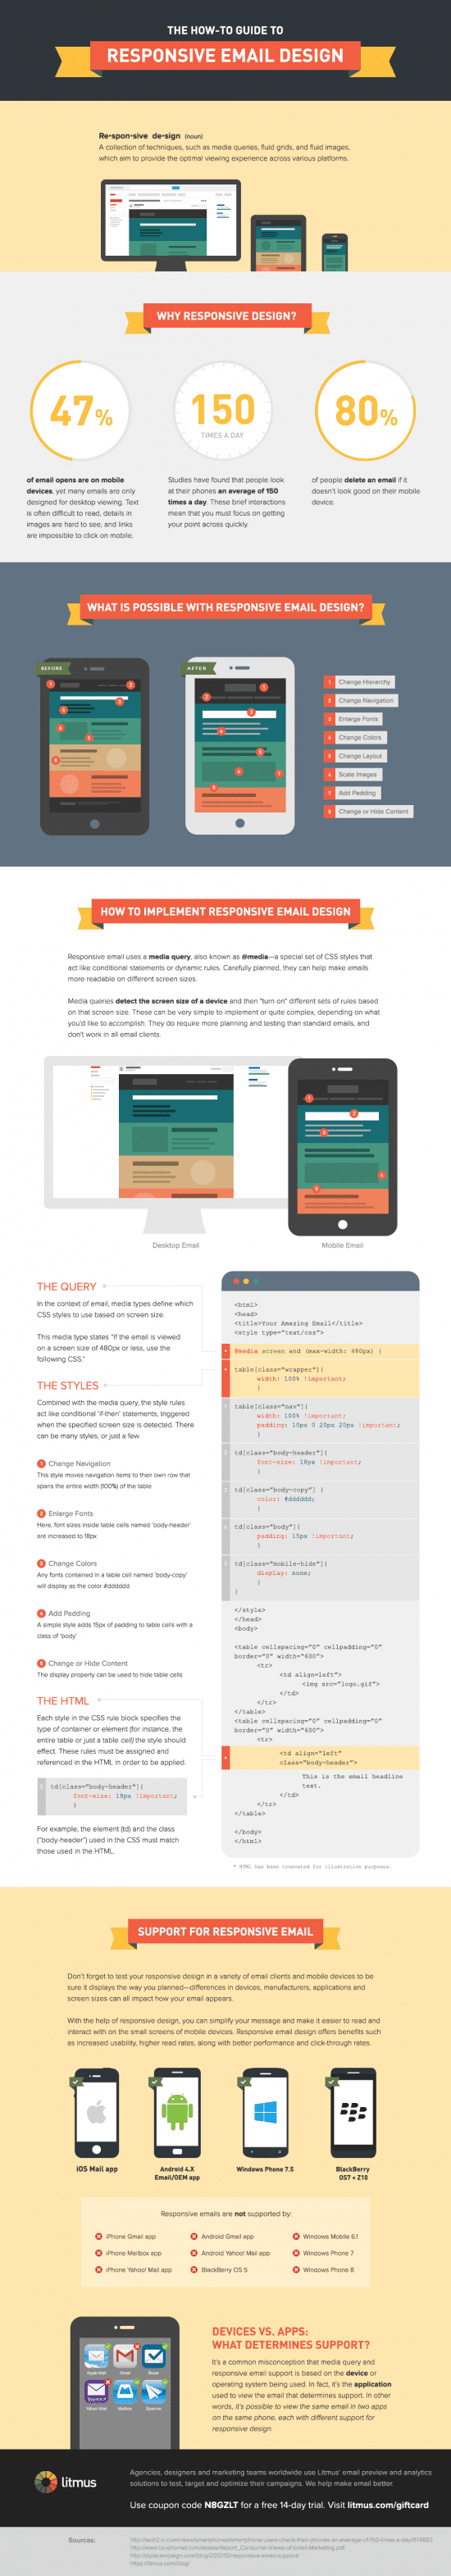 responsive-email-design